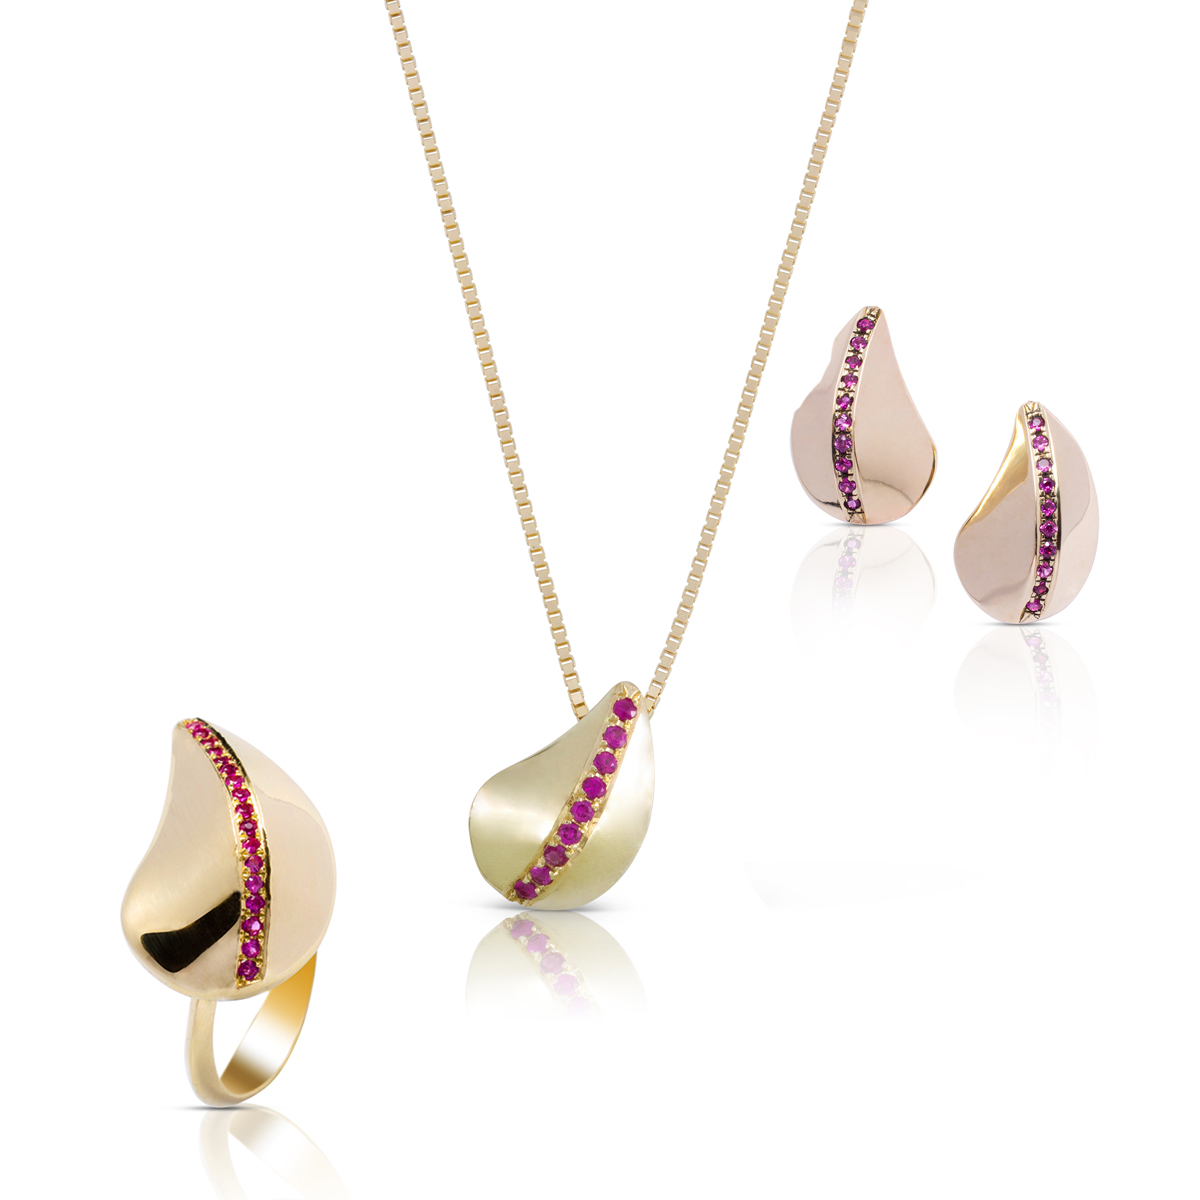 A pear shaped jewelry set with rubies